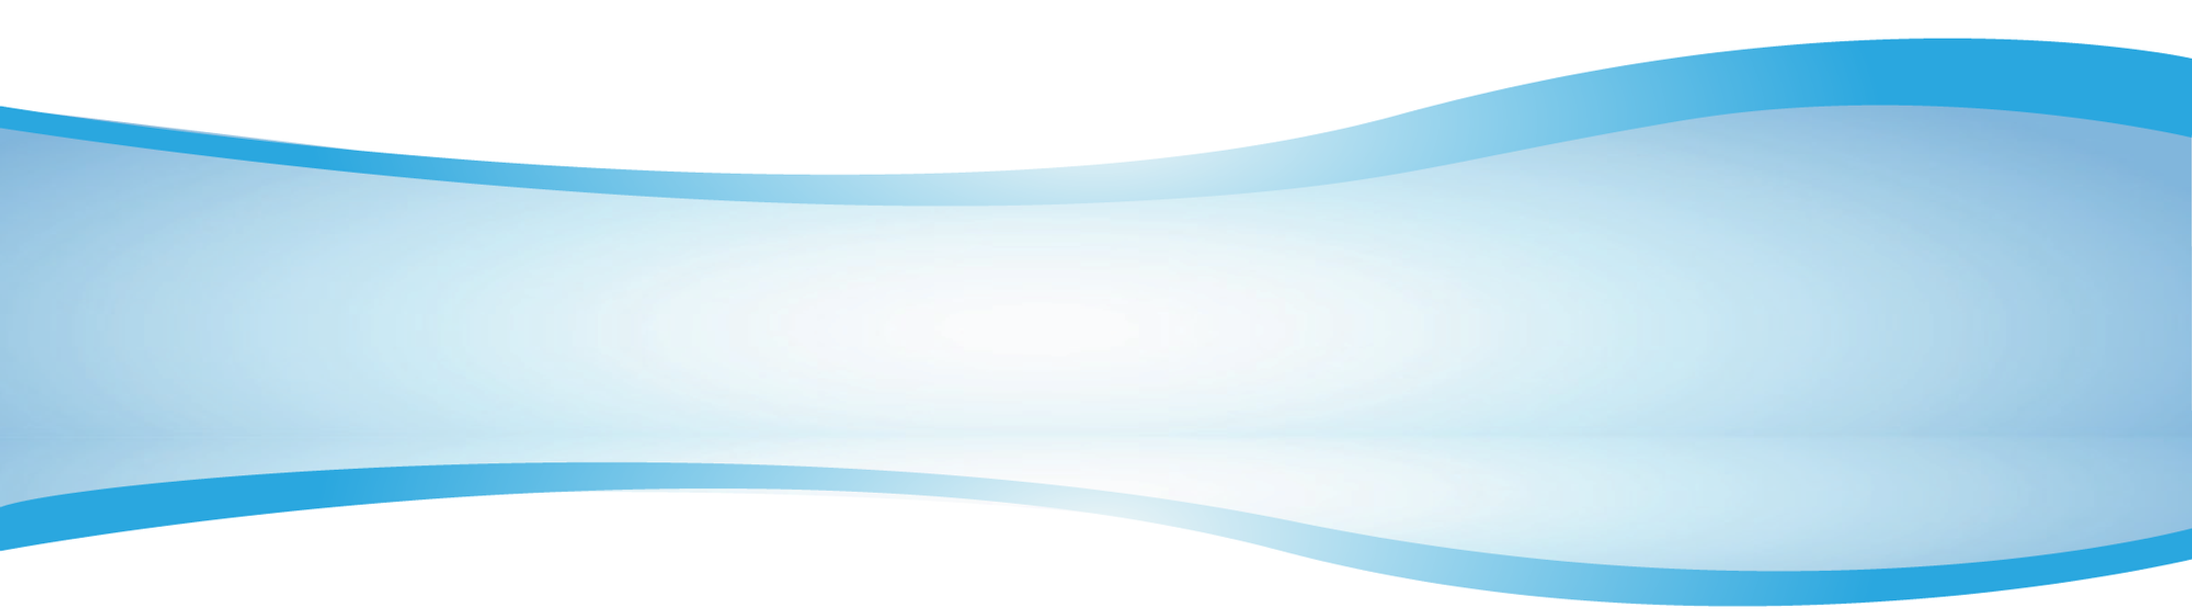 Cover-banner-web-(-2-)-2192-x-613-.png